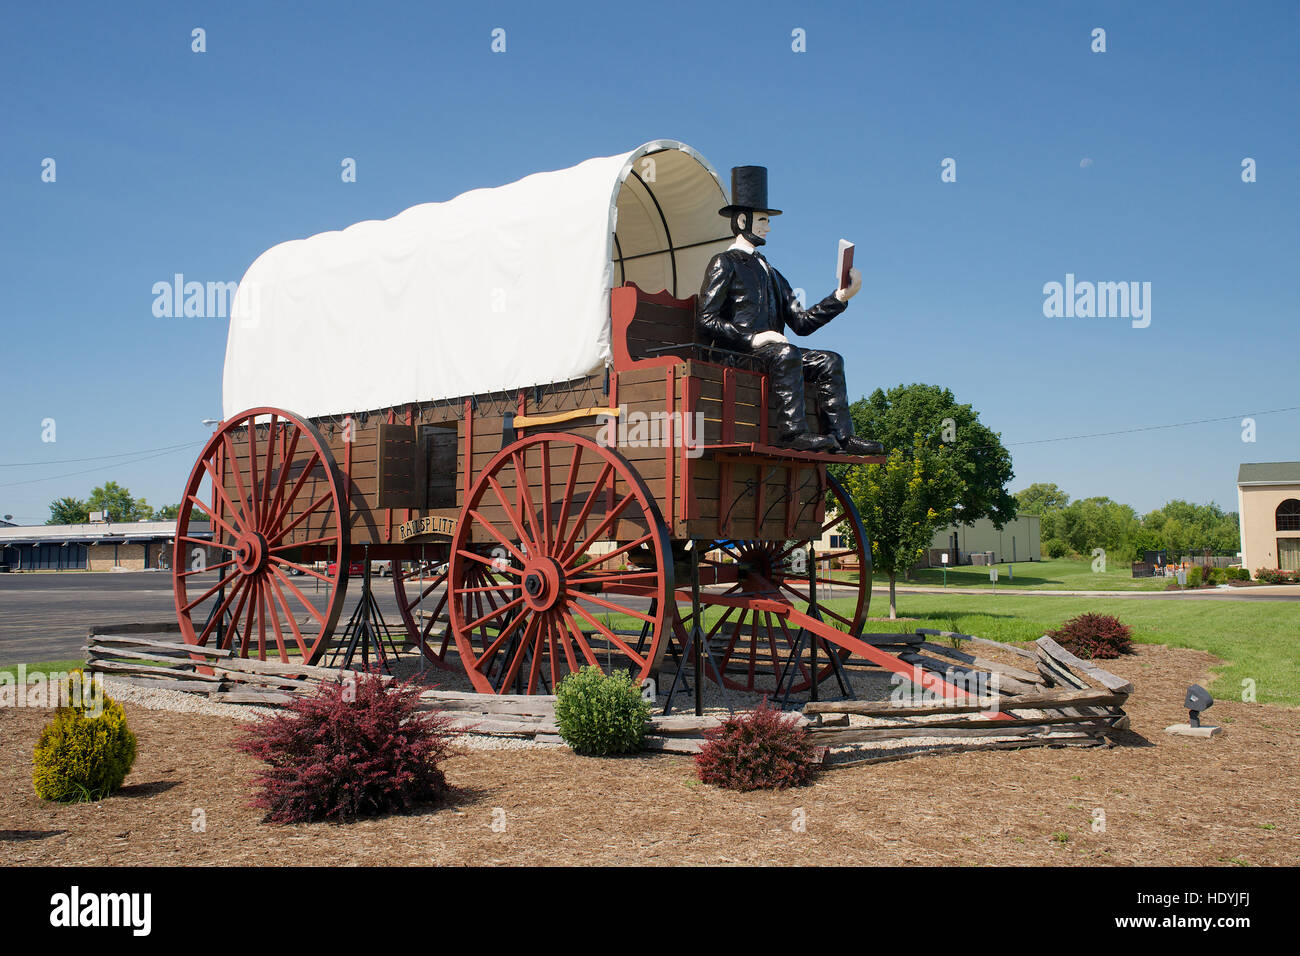 The Largest Covered Wagon in the World at Lincoln Parkway, Lincoln, Logan County, Illinois, USA. - Stock Image